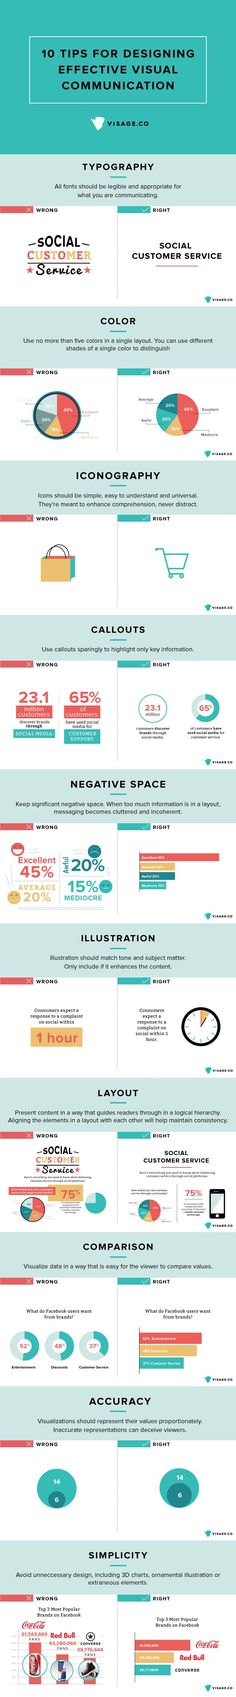 Your Guide To Designing Effective Visual Communication – infographic Published by Maan Ali